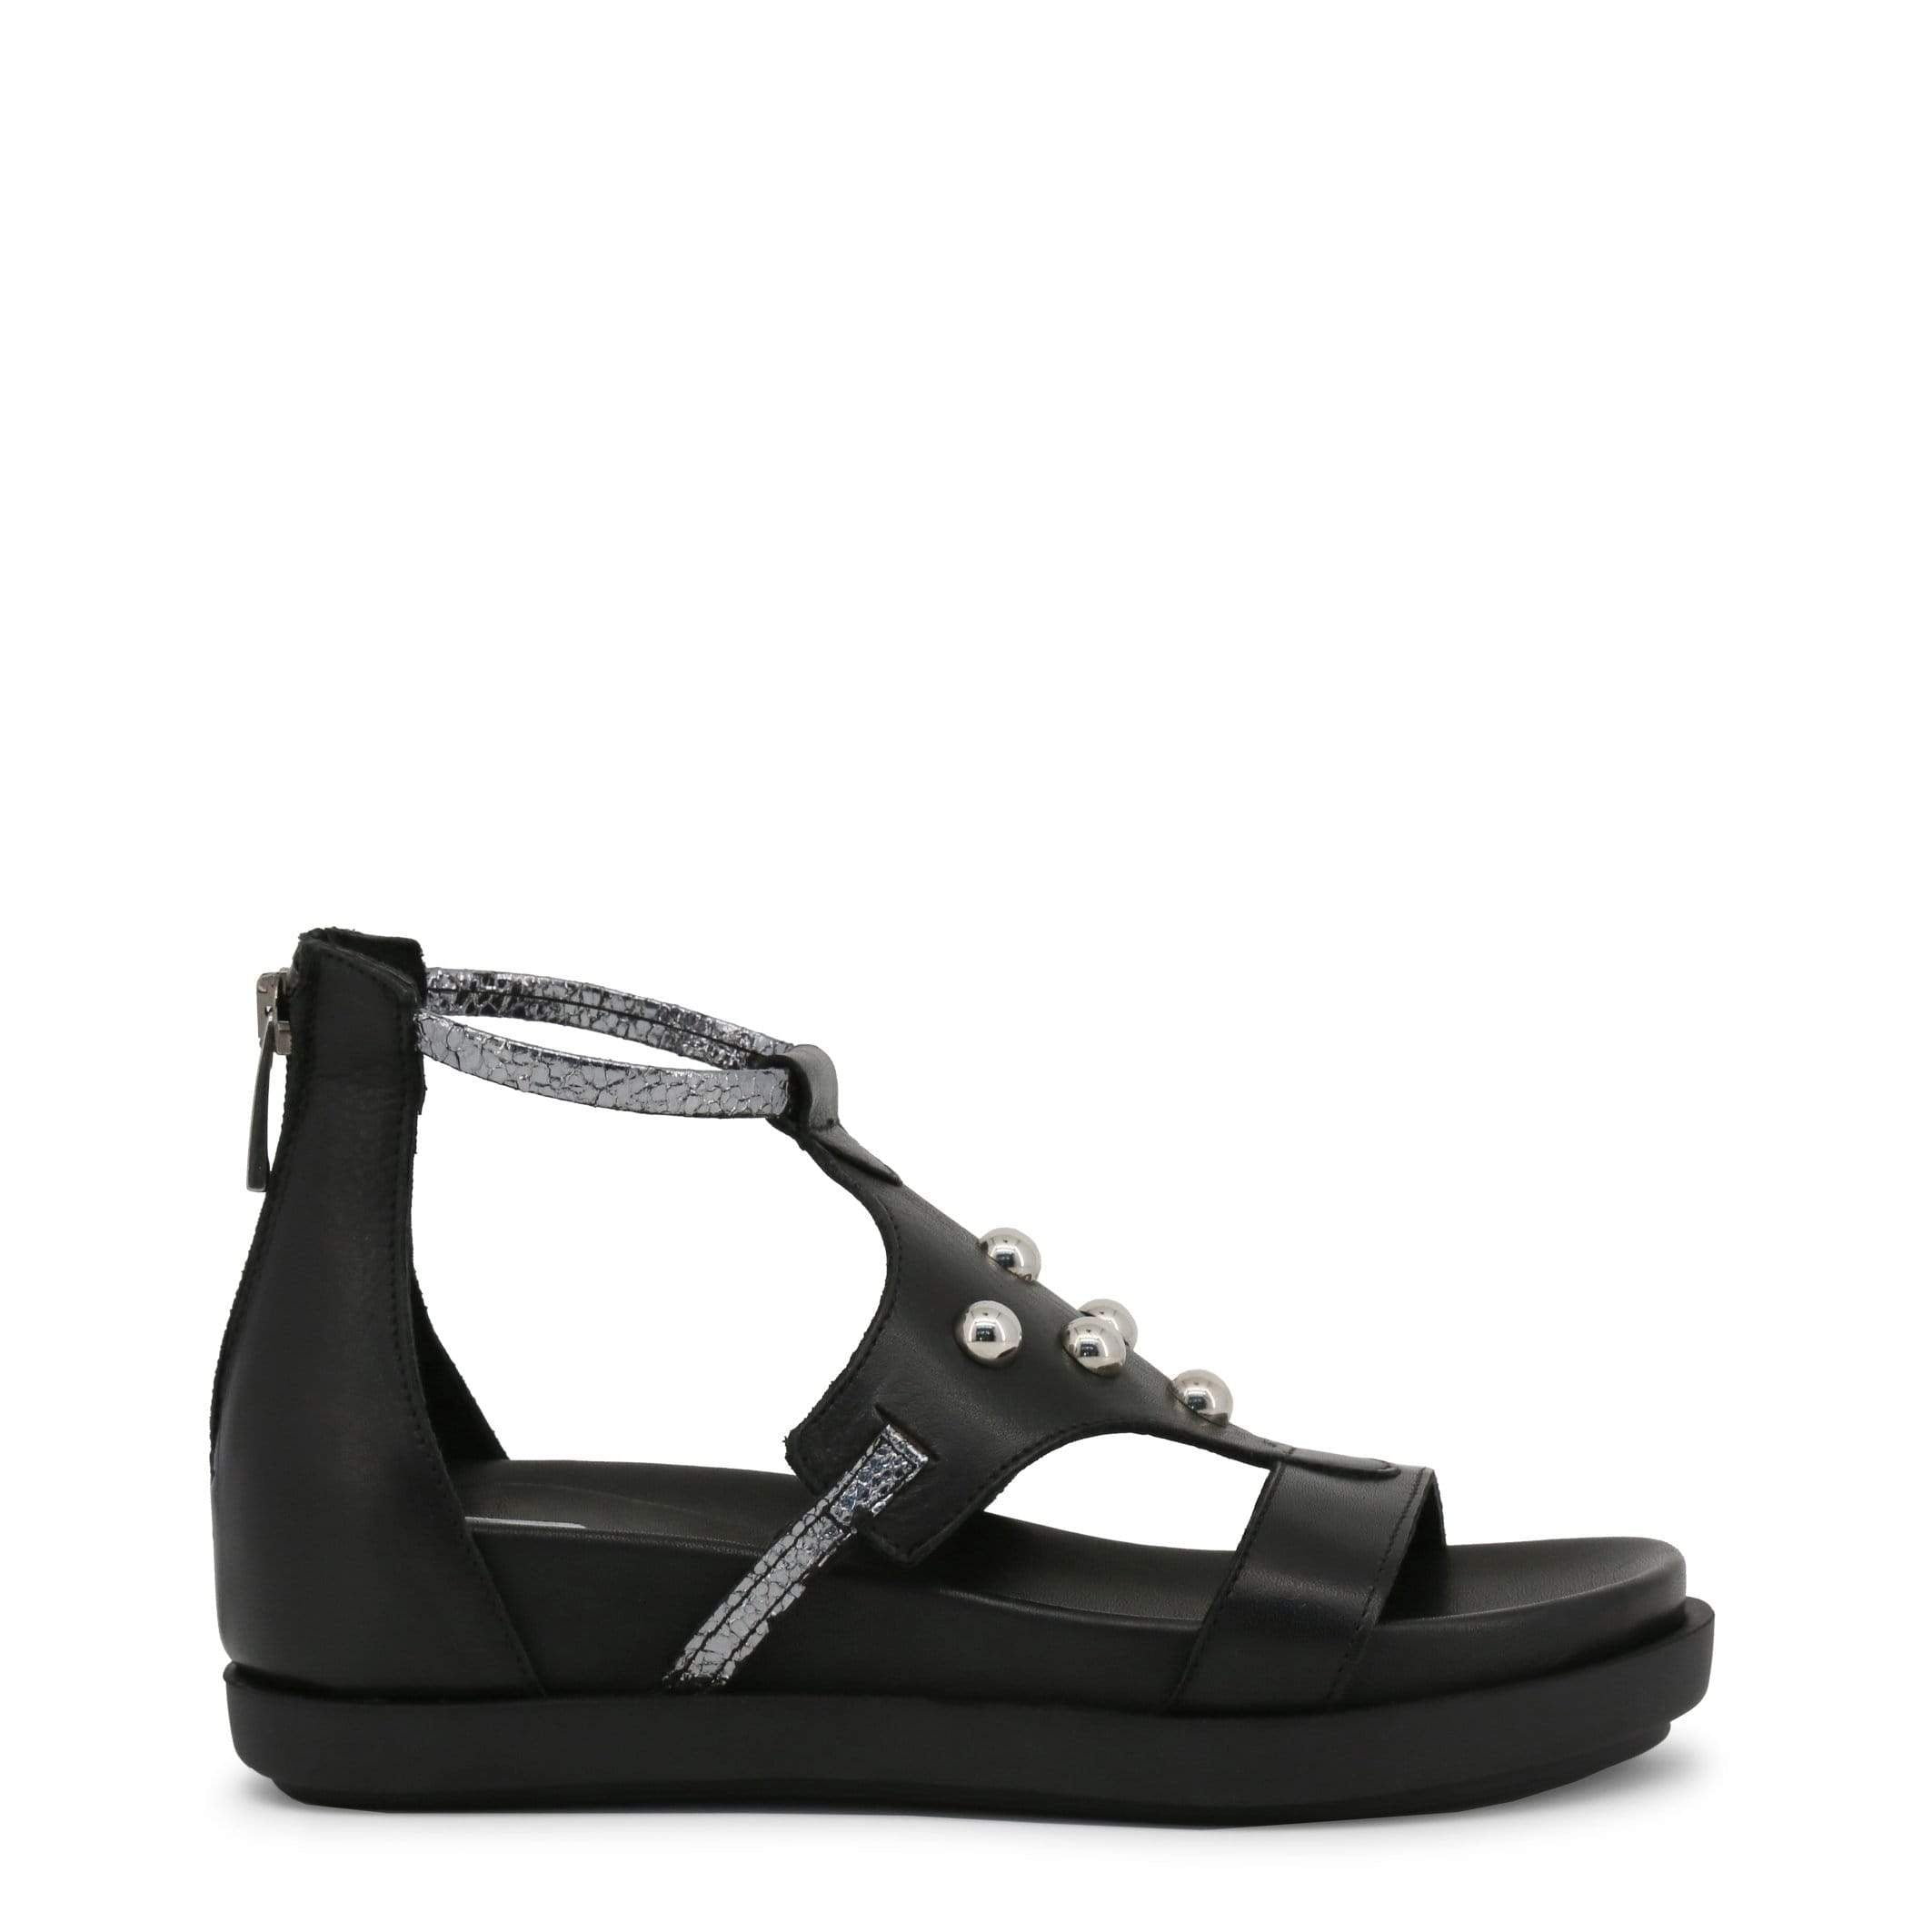 Ana Lublin Shoes Sandals black / EU 37 Ana Lublin - ANDREIA